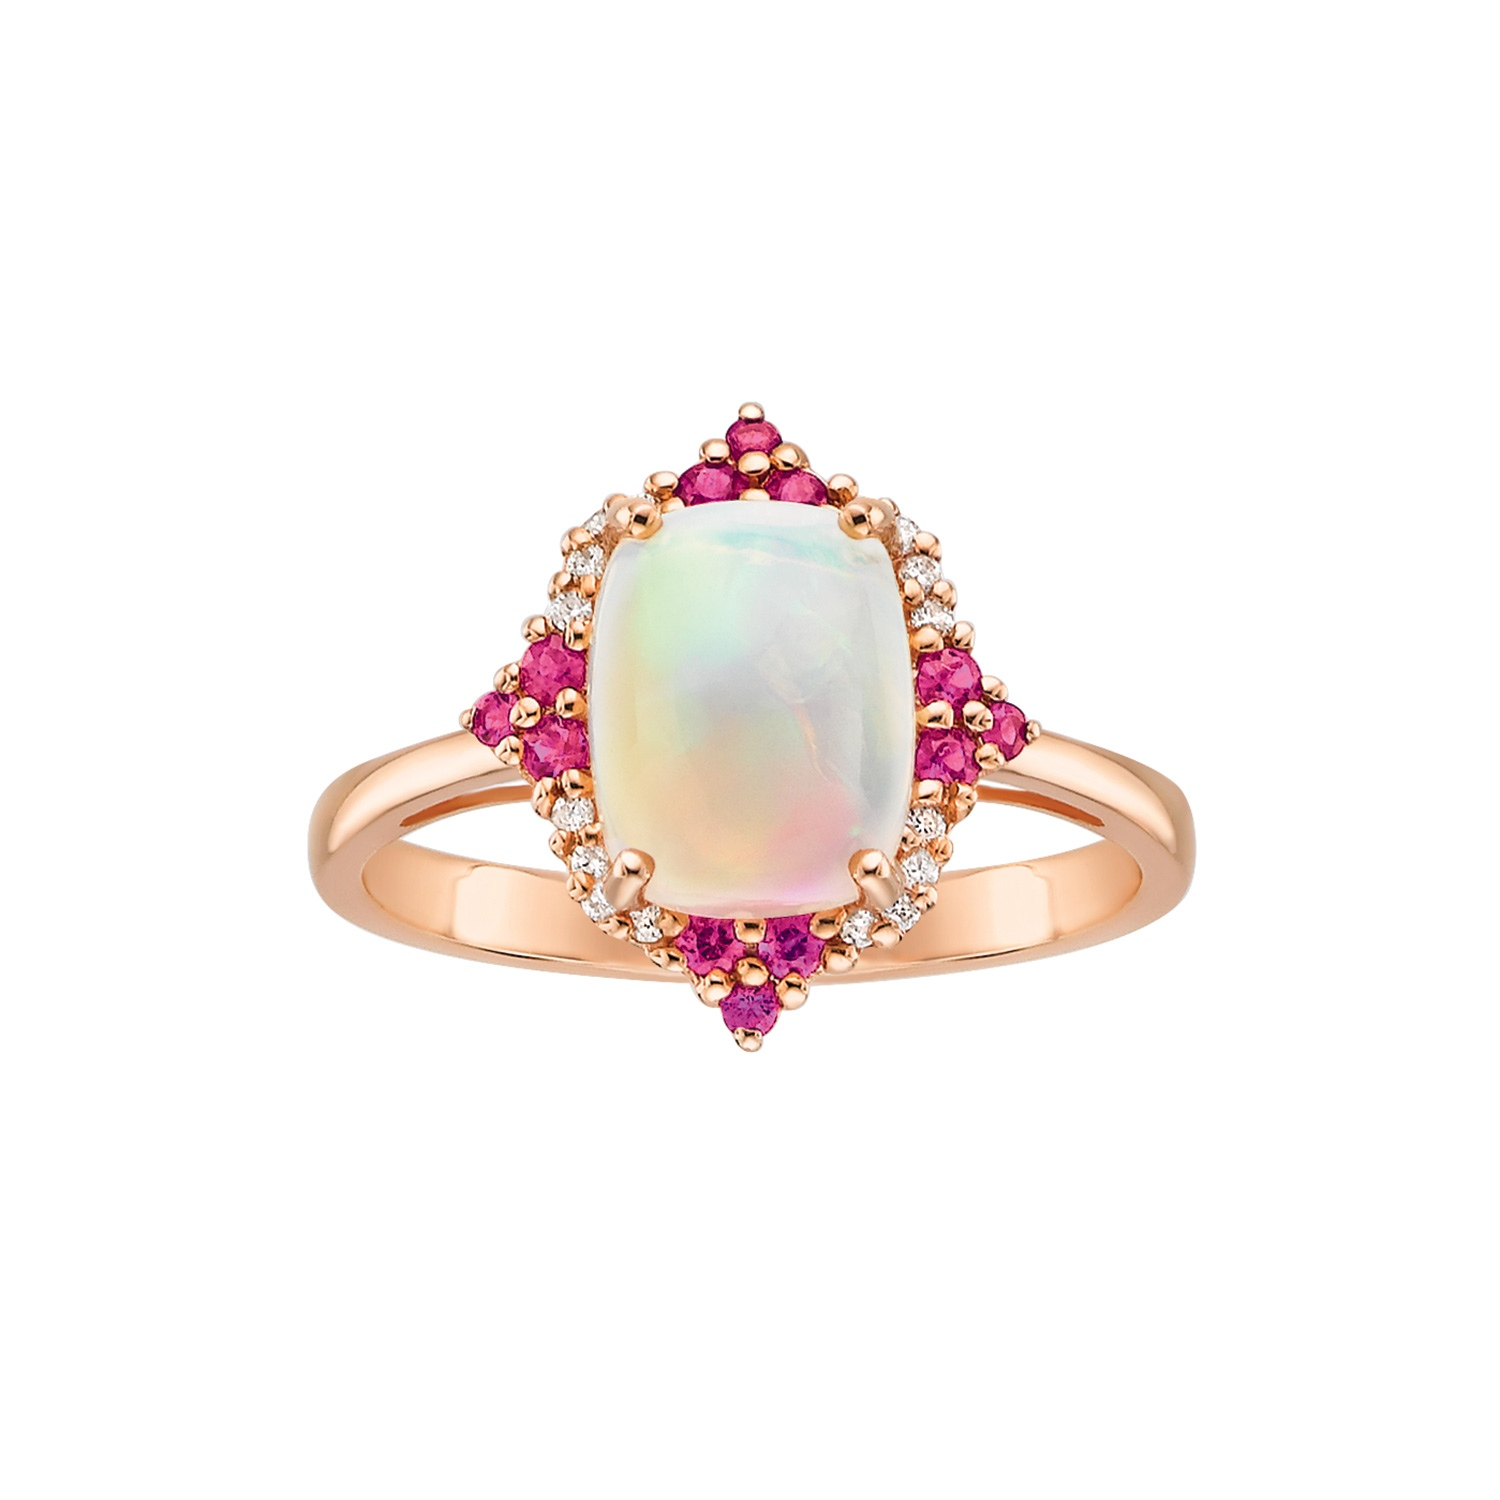 c0773f68eae3f Ethiopian Opal Ruby and Diamond Accented Ring in 10K Rose Gold in ...